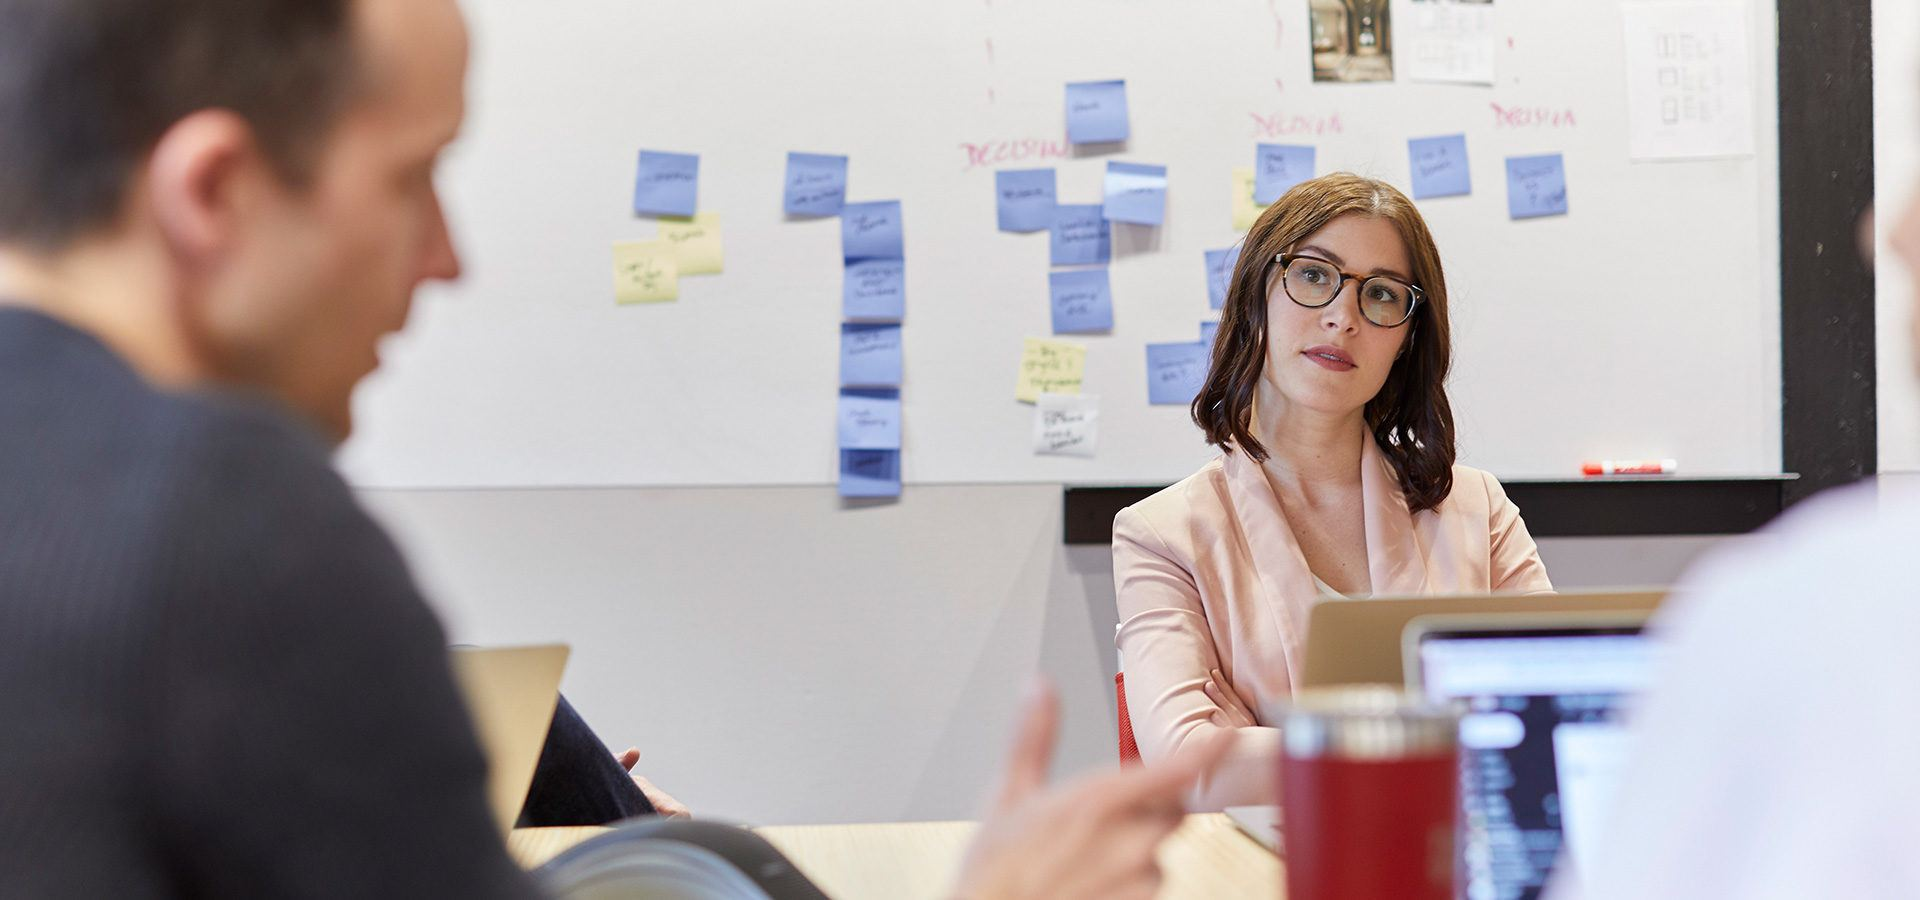 Employees working together on a brand-strategy initiative.